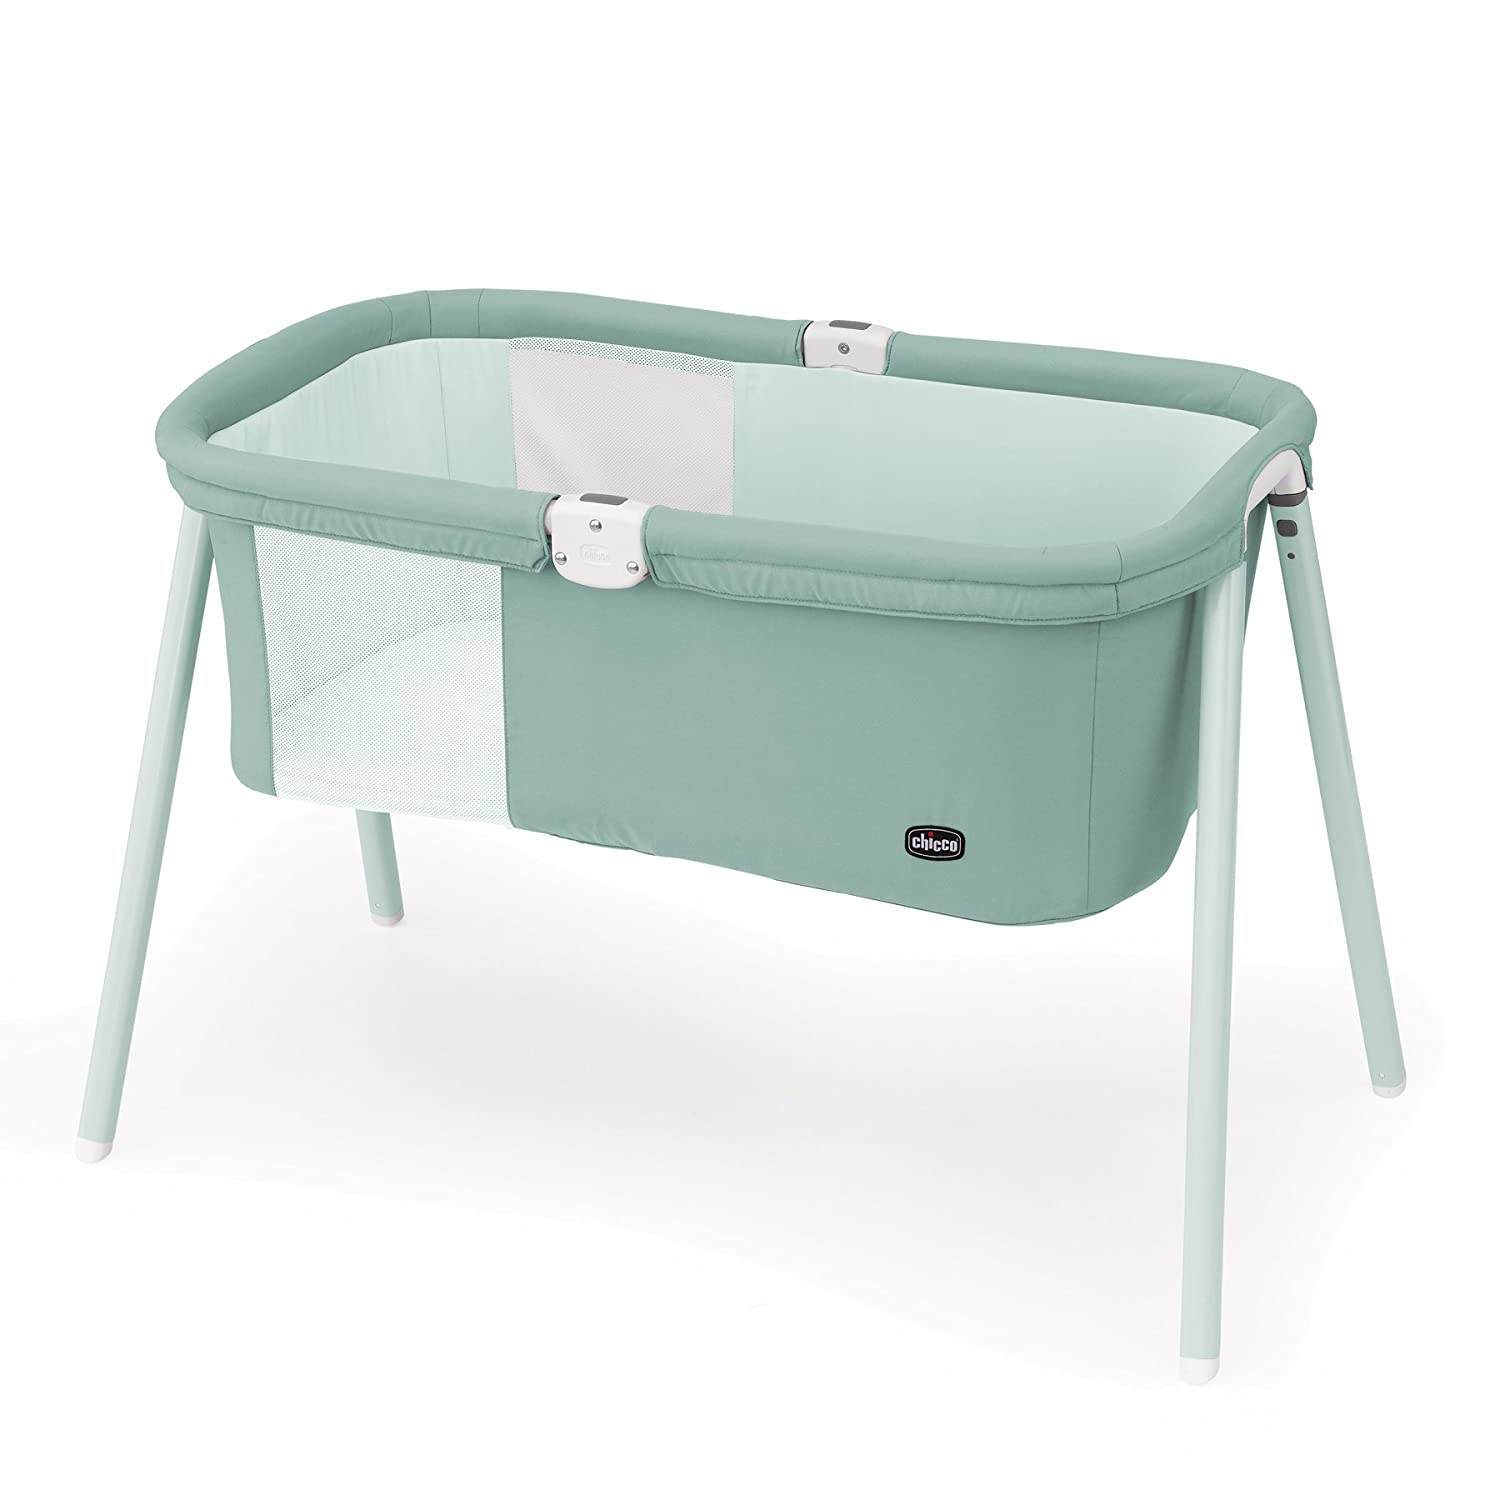 Chicco LullaGo Portable Bassinet, Grey Mist 7904472